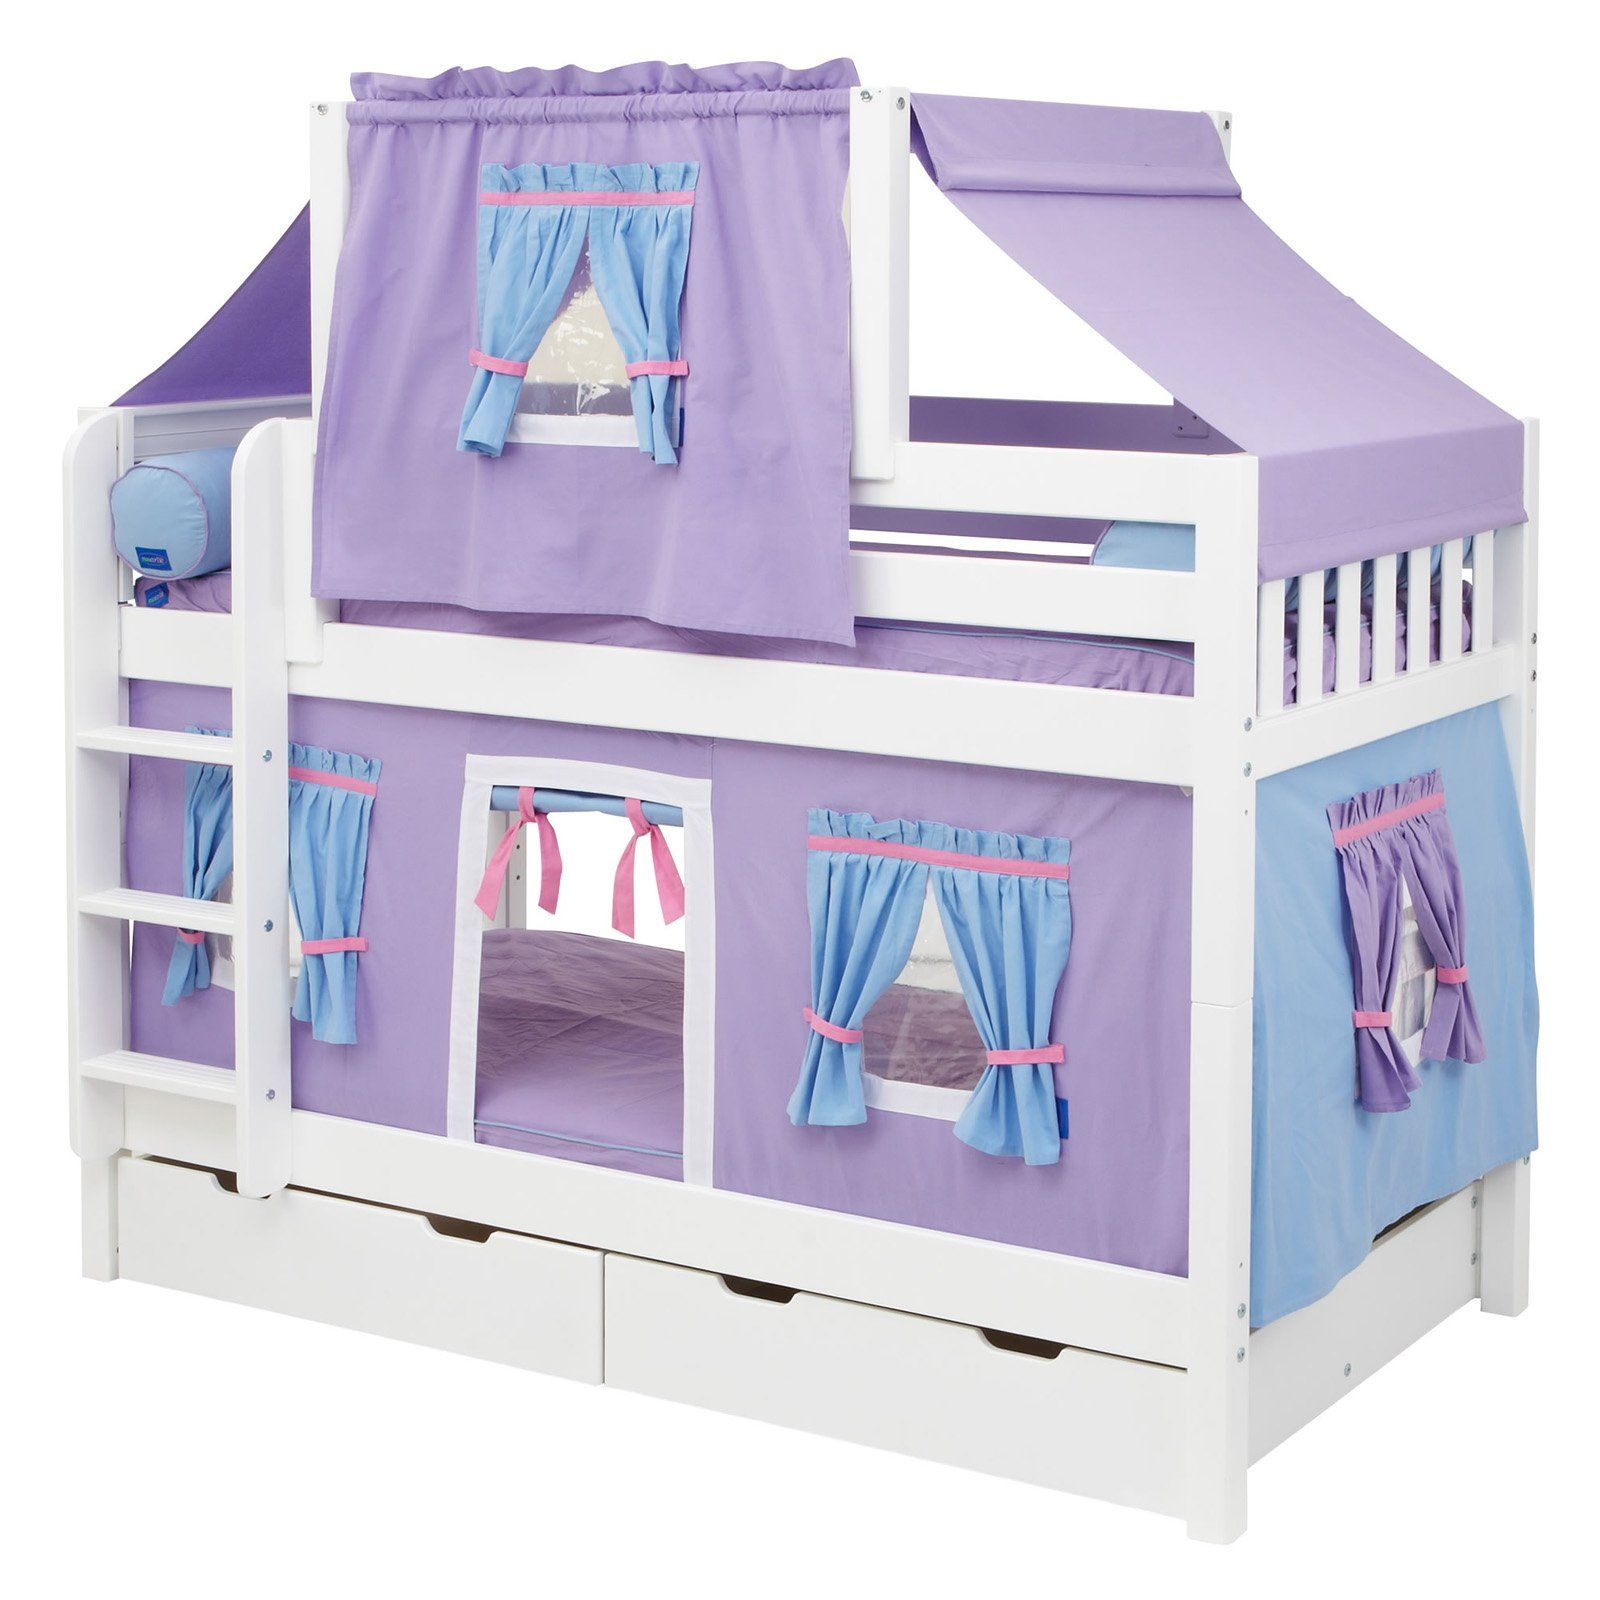 Hot Shot Girl Twin over Twin Deluxe Tent Bunk Bed MXTX149